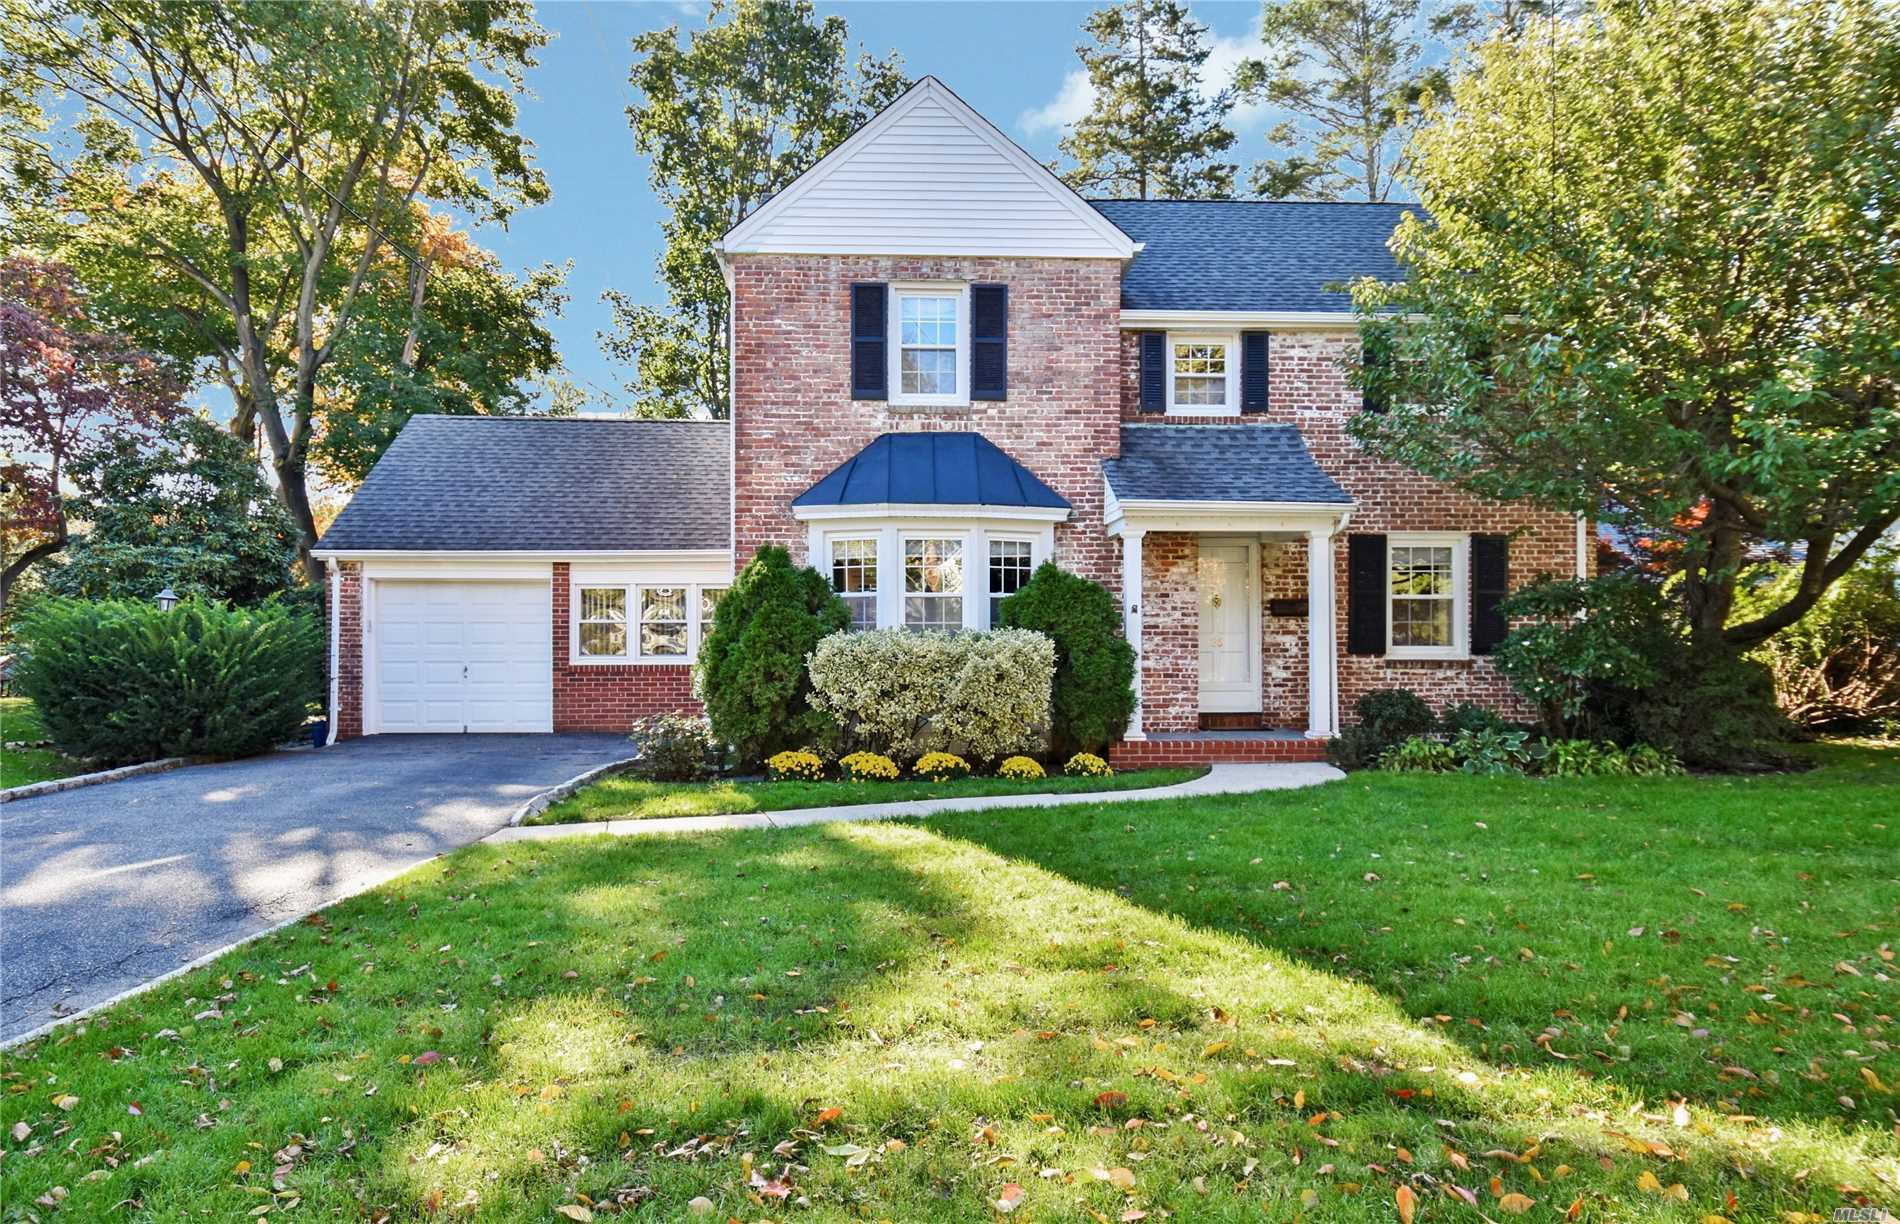 Welcome To East Williston! Curb Appeal Abounds This Center Hall Brick Colonial In The Heart Of The Village. This Lovely Home Offers Hdwd Fls, Cac, Lrm W/Fpl, Fdrm, Den, Newly Updated Kitchen W/Granite & S/S Appl's, Pwd Rm And Screened Porch. The Mbdrm W/Fbth And 2 Add'l Generous Size Bdrms, Hall Bth And Pull Down Attic For Storage Complete The 2nd Fl. Enjoy Extra Living Space In The Finished Lower Level With Rec Area , Ldry And Utilities. Close To Lirr, Parks, Shops And Award Winning Ew Schools!